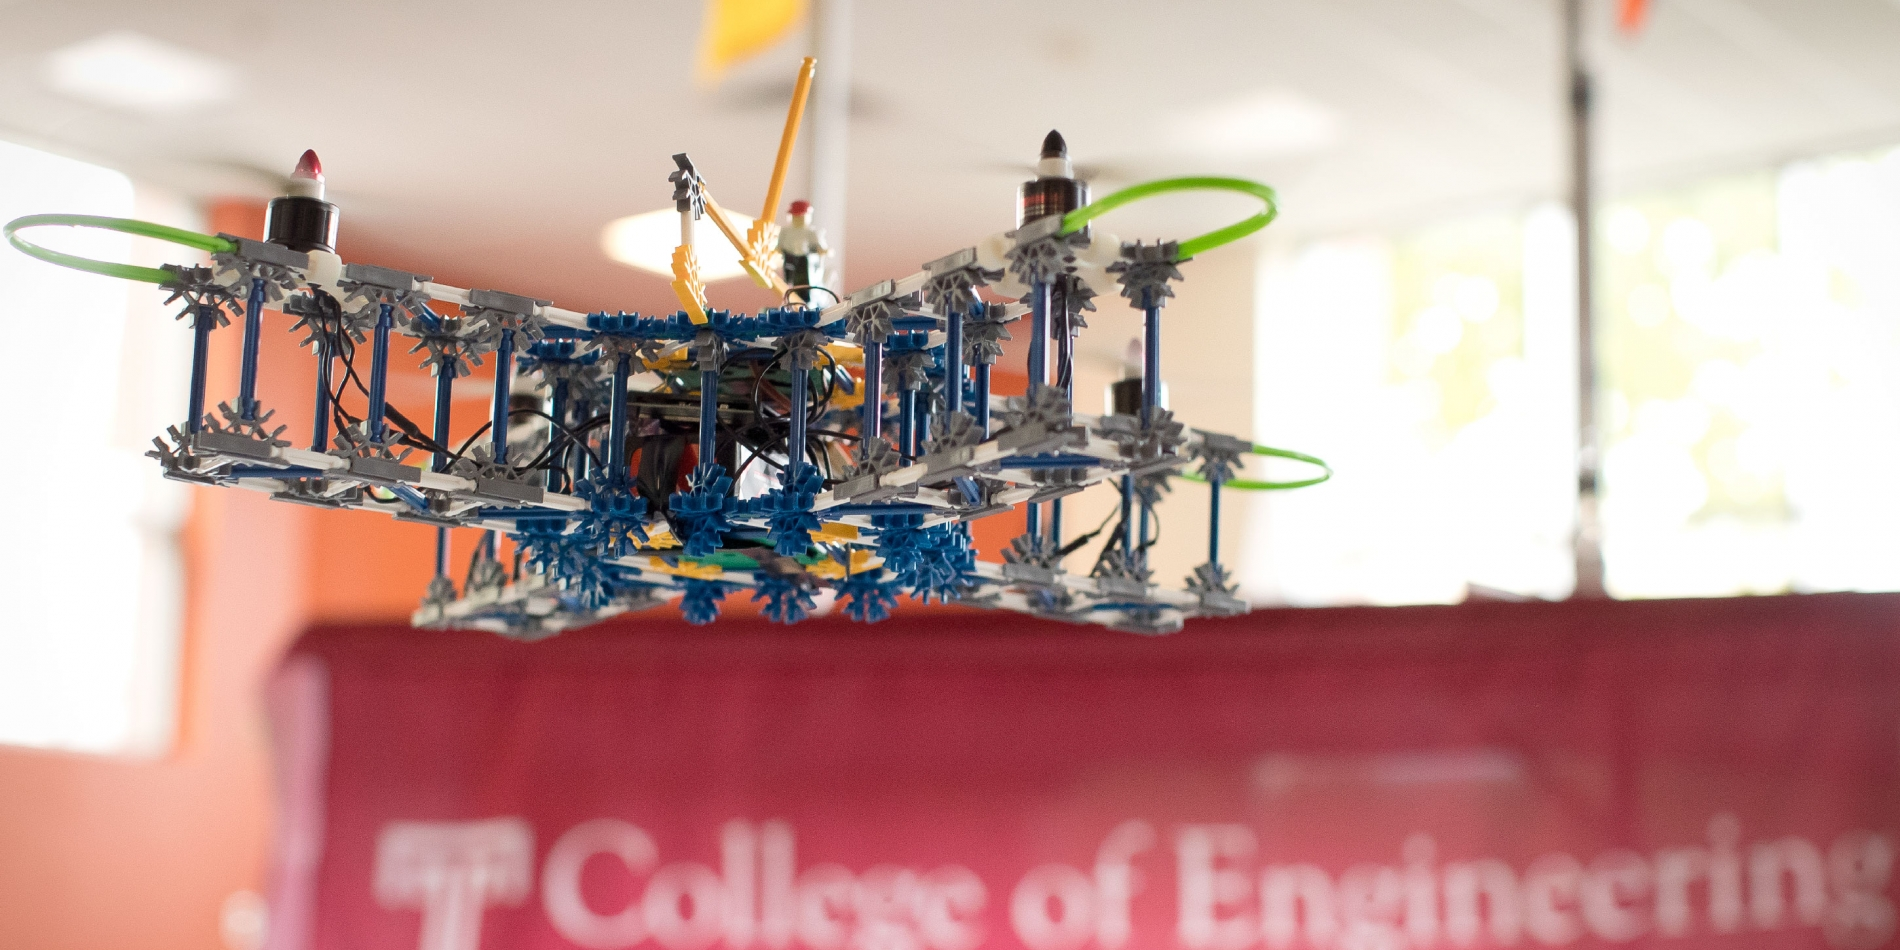 Engineering student at Temple University built a drone made out of toys